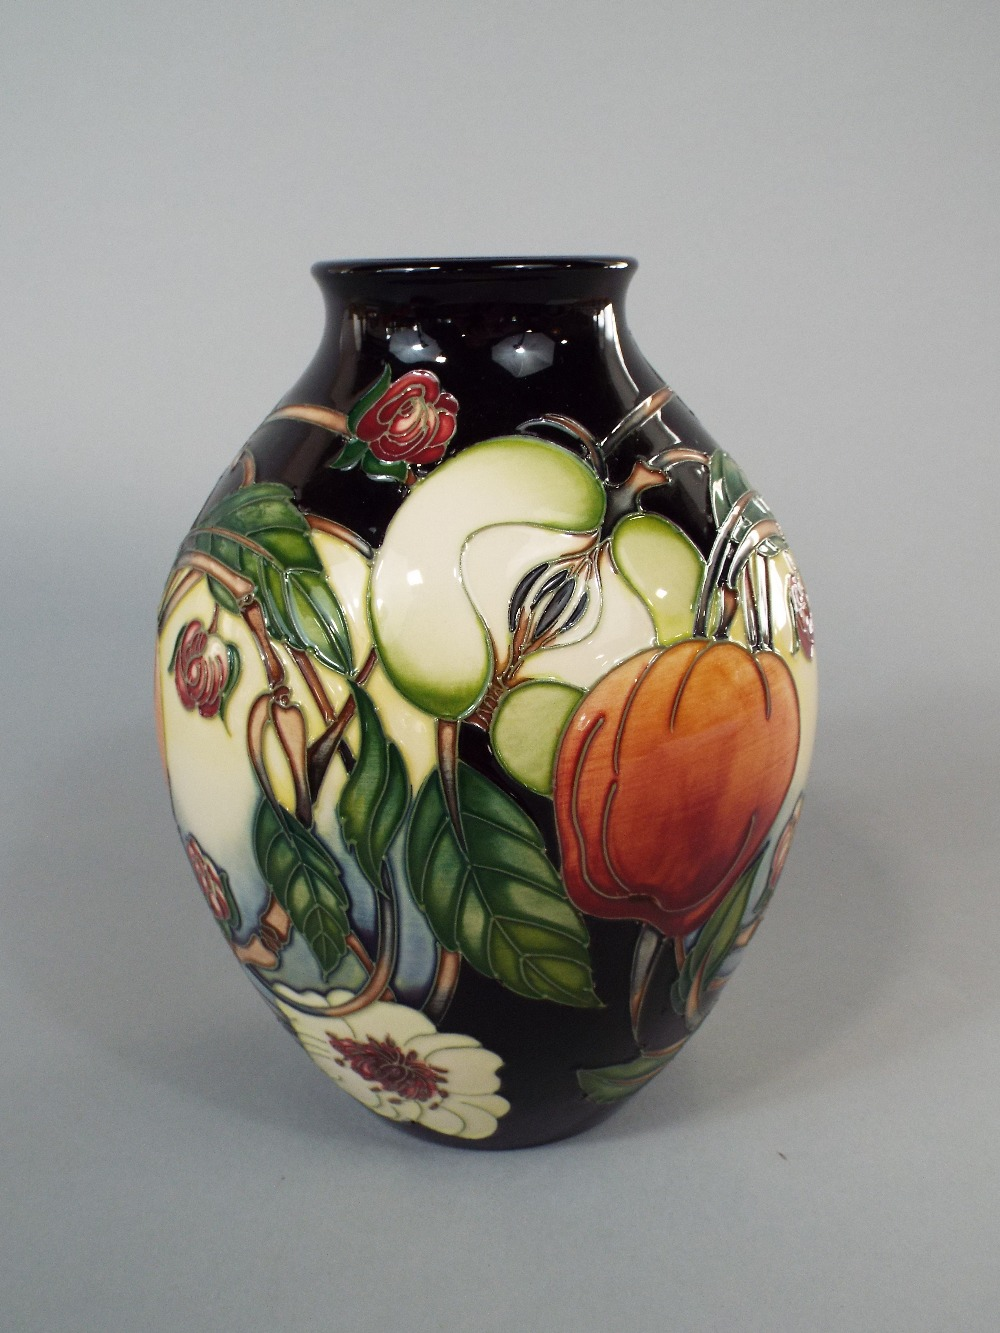 Lot 38 - A Moorcroft vase of ovoid form with painted fruit and floral detail, with impressed and printed